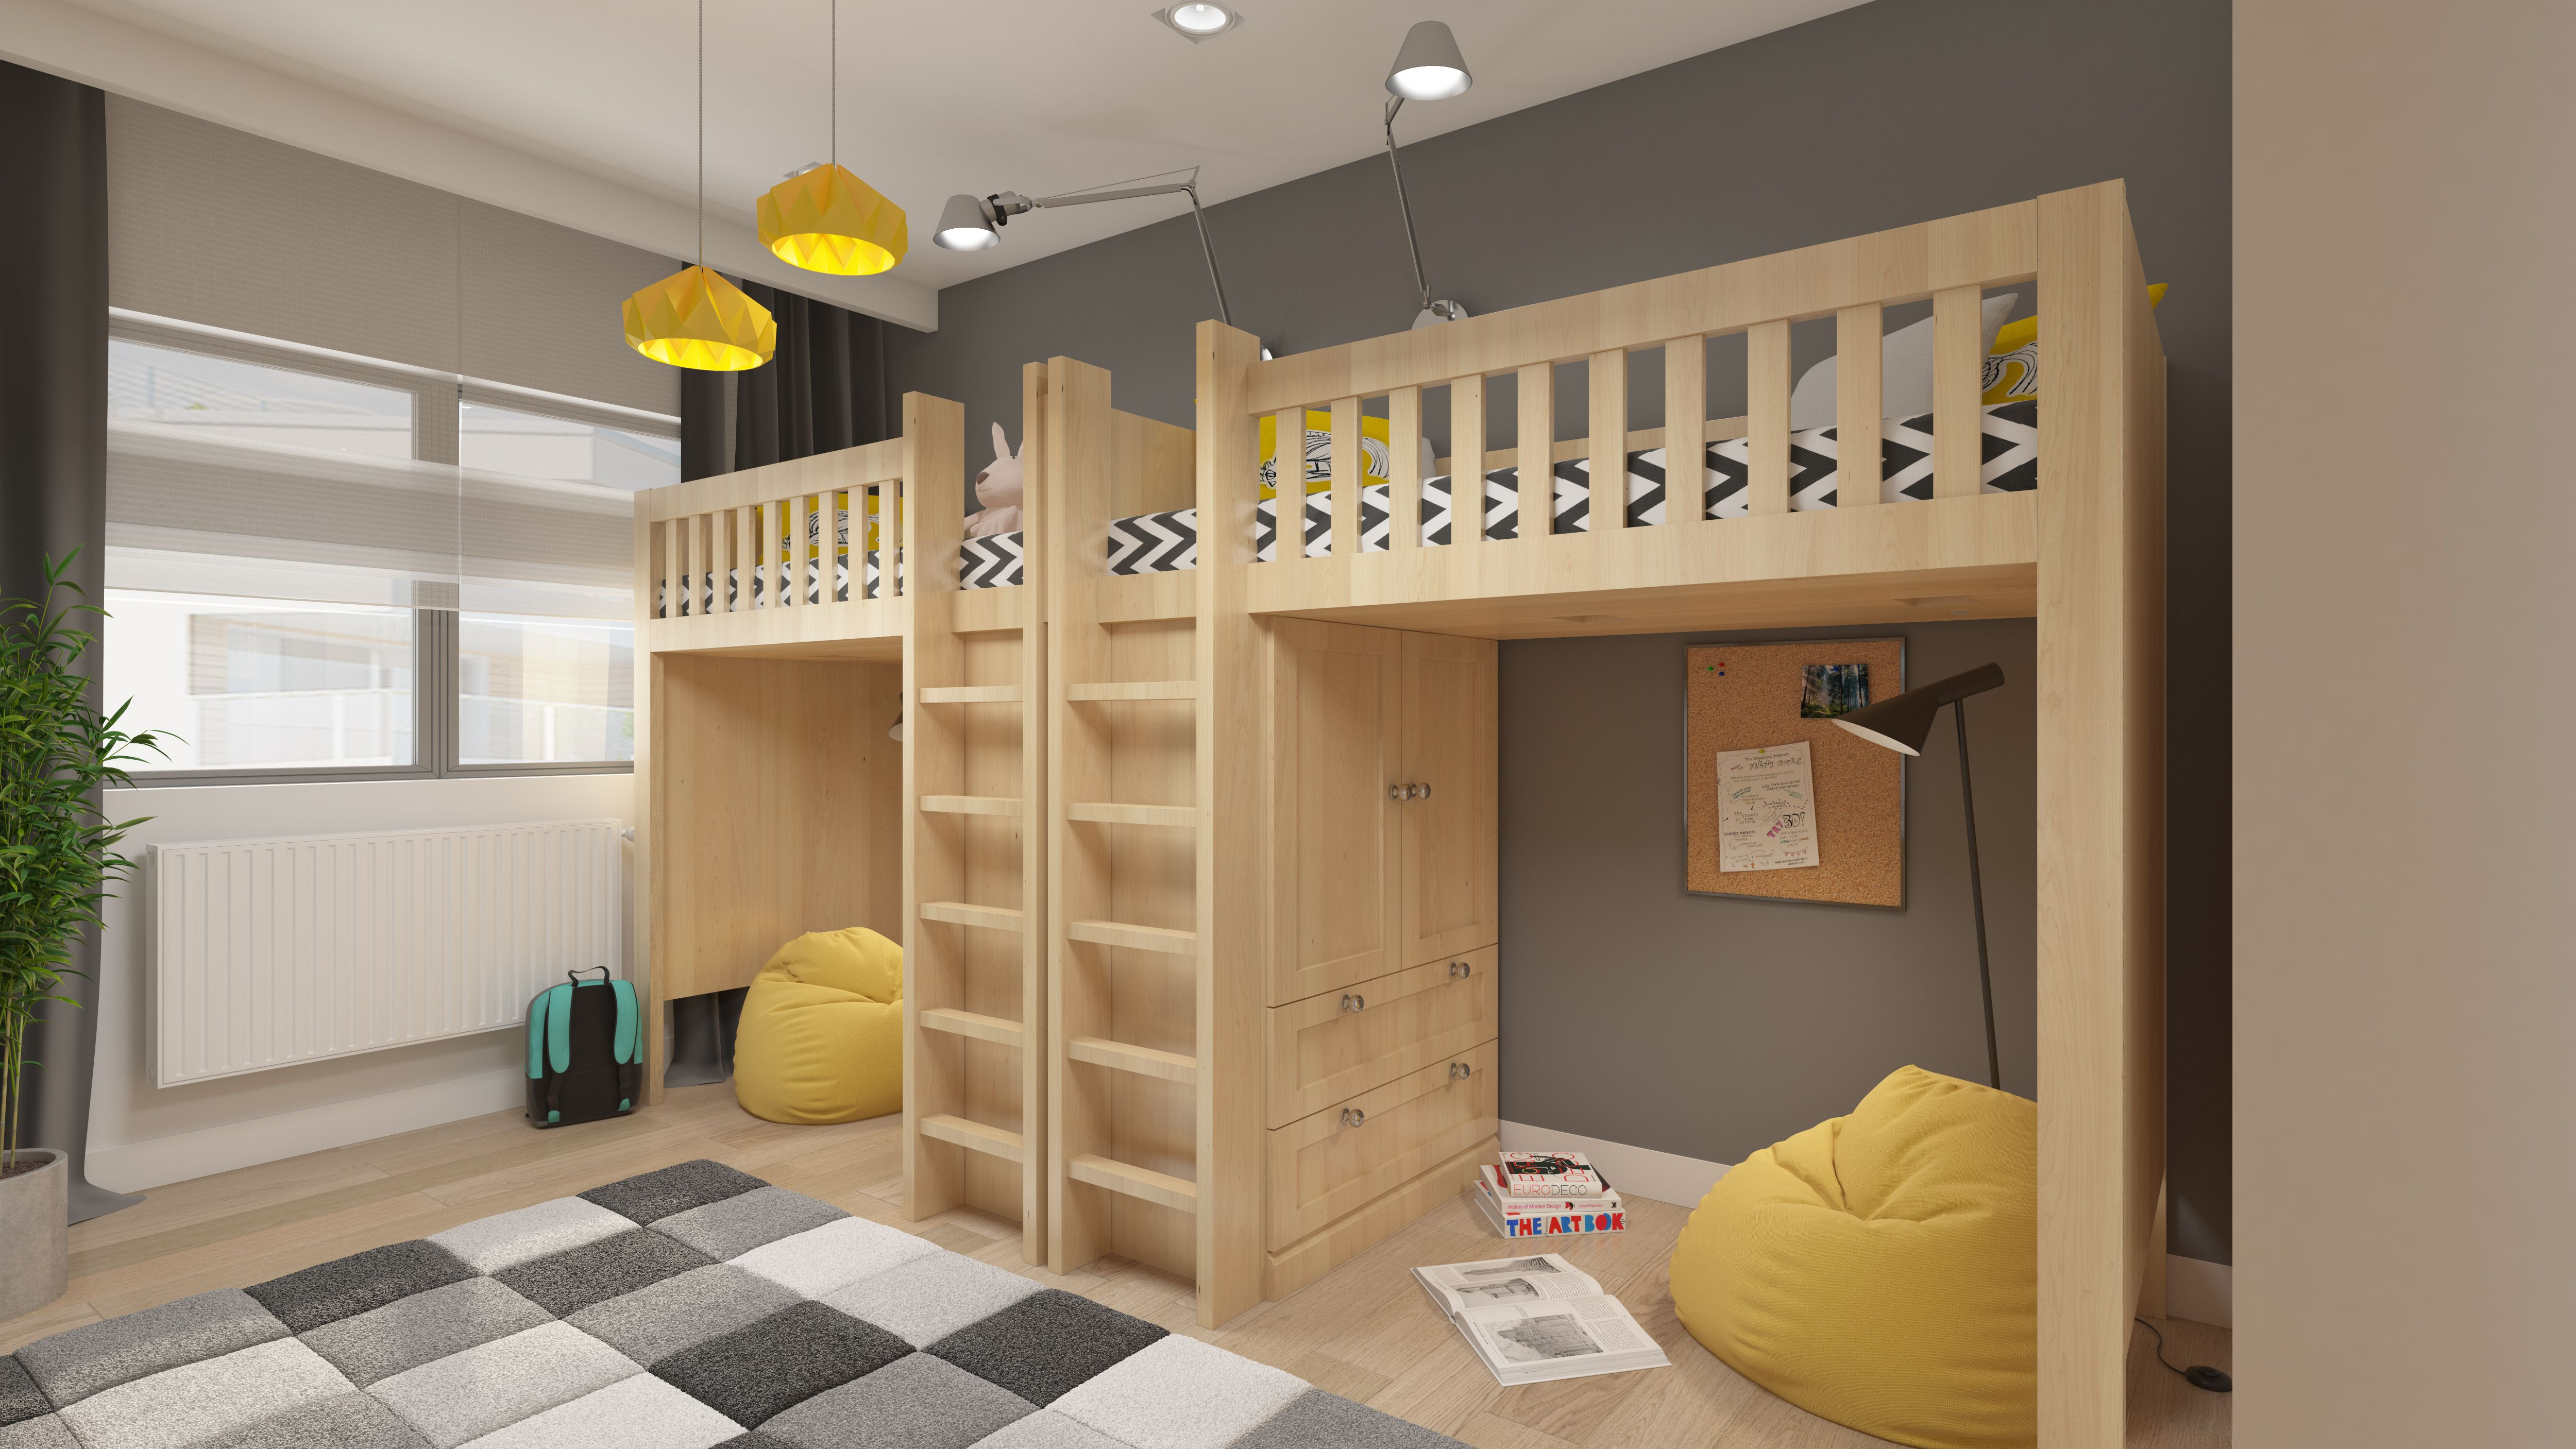 Design Variant Of Boarding House Bedroom Design With Bunk Beds Home Interior Design Simple House Design Boarding House